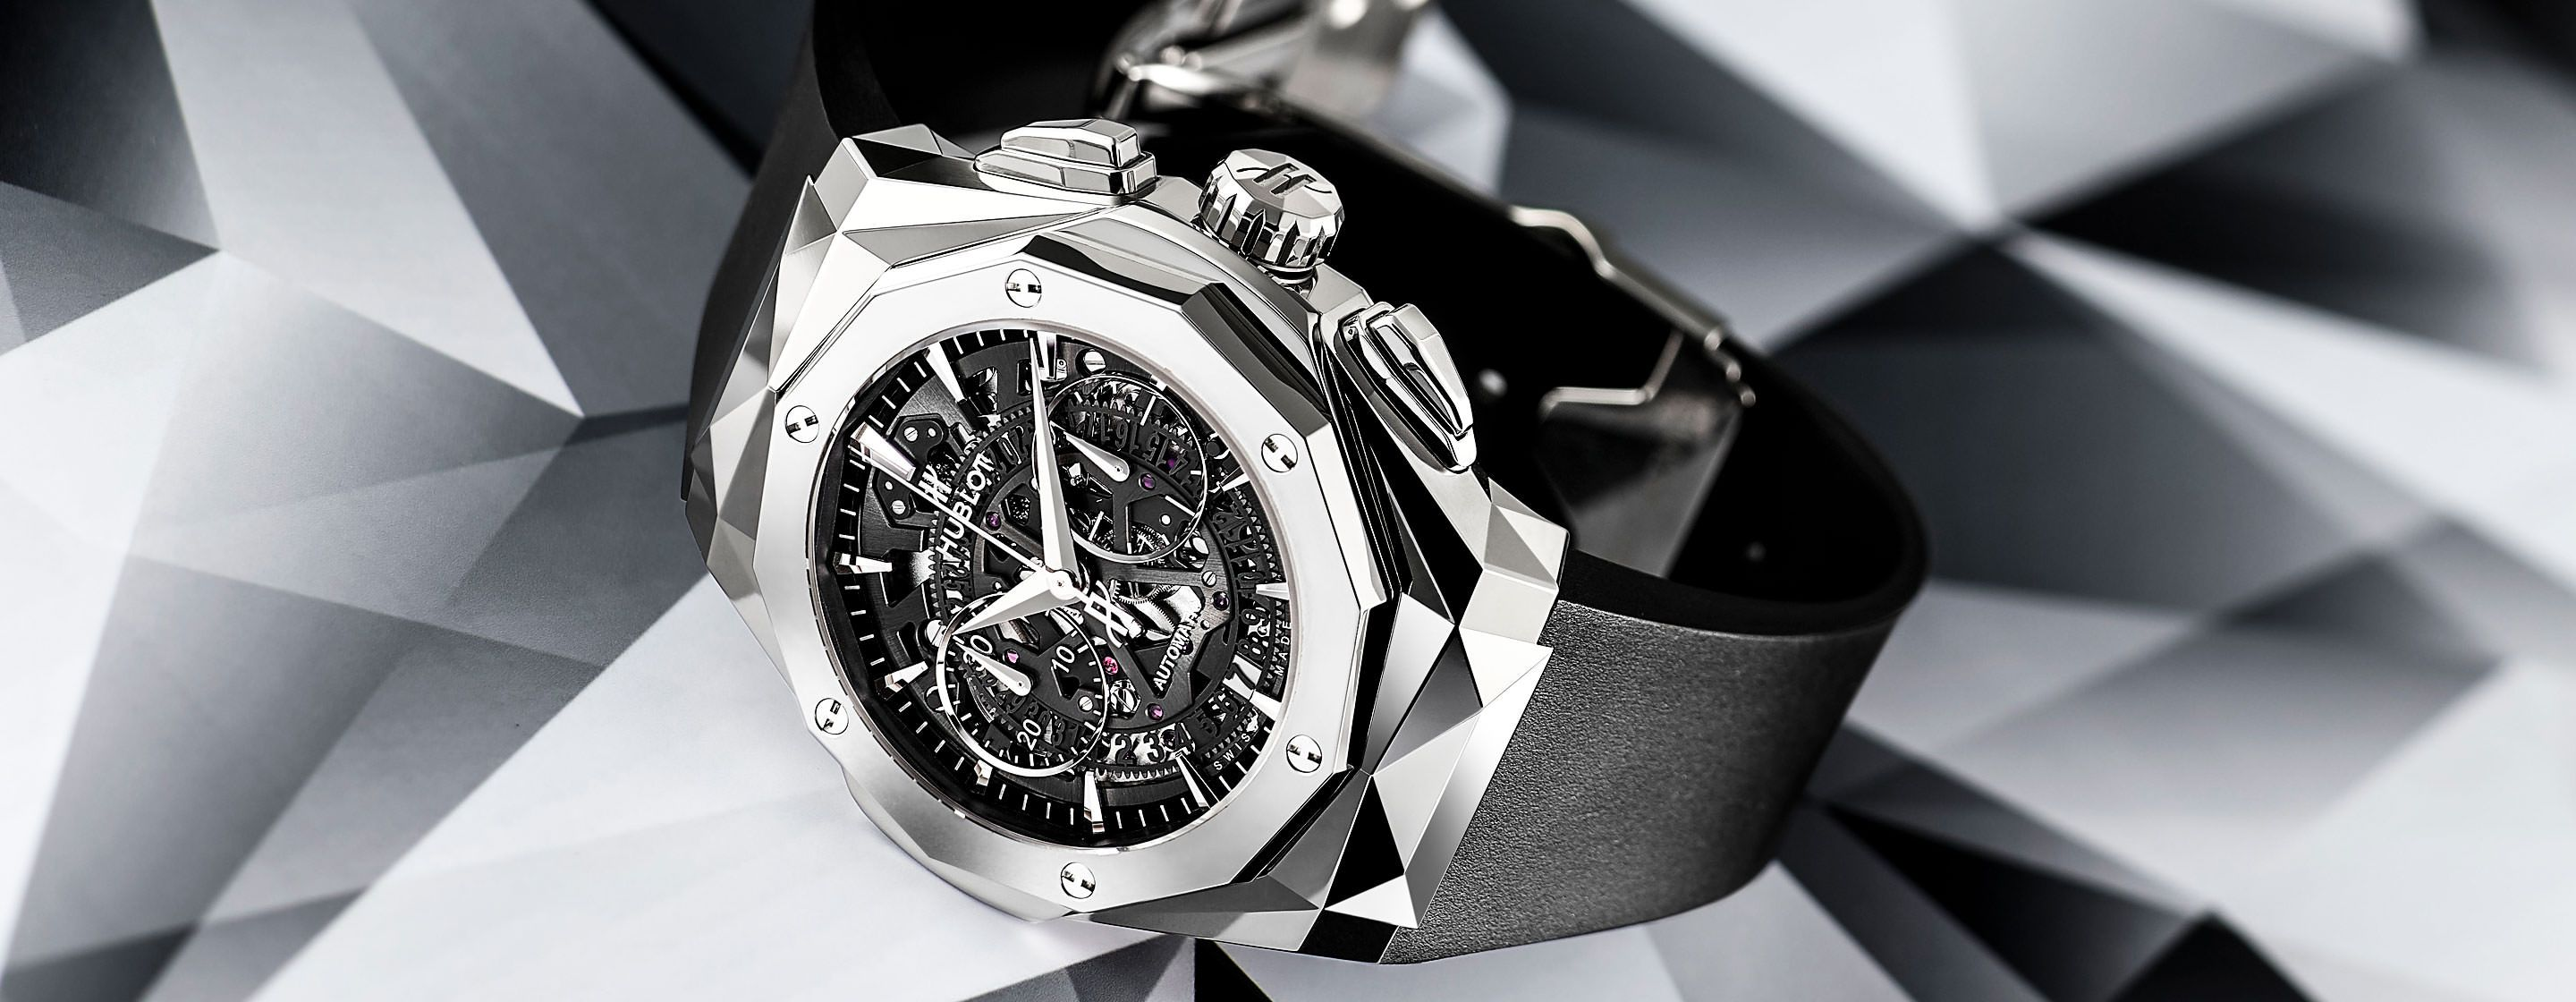 18c8d1544ee131 FeatureHublot's Sculpted New Work Of Art – The Classic Fusion Aerofusion  Chronograph Orlinski